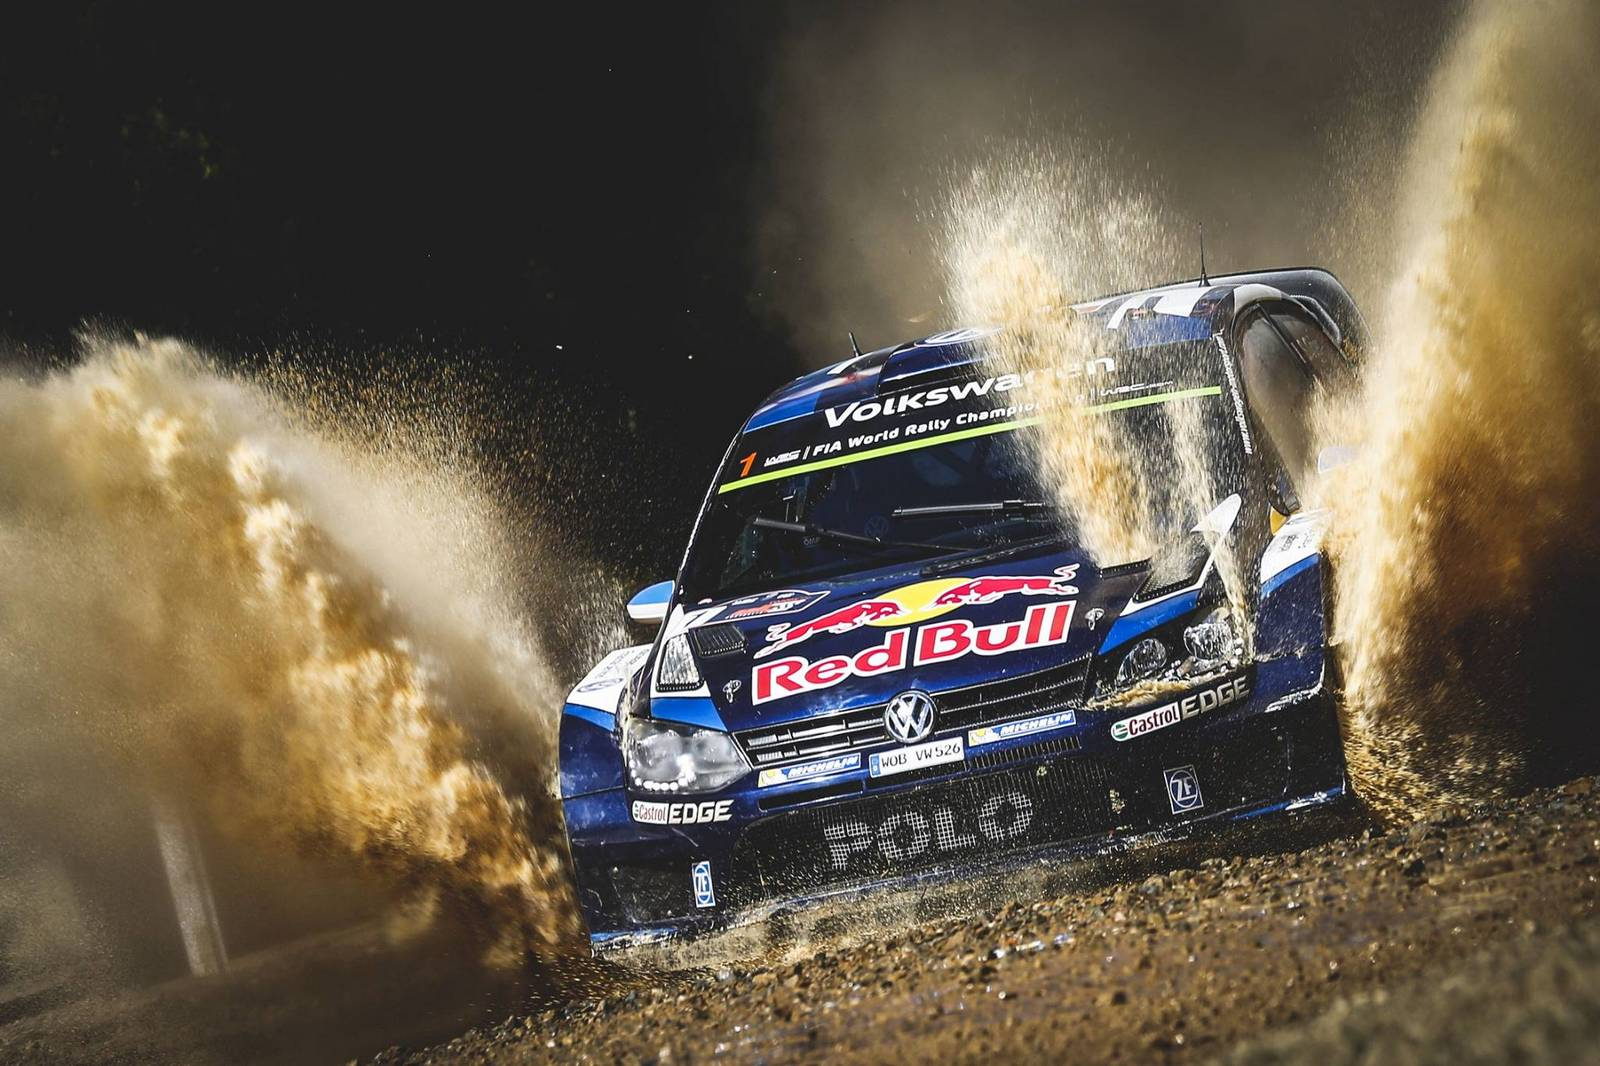 WRC: He Has Done it Again! Ogier is the 2015 World Rally Champion ...